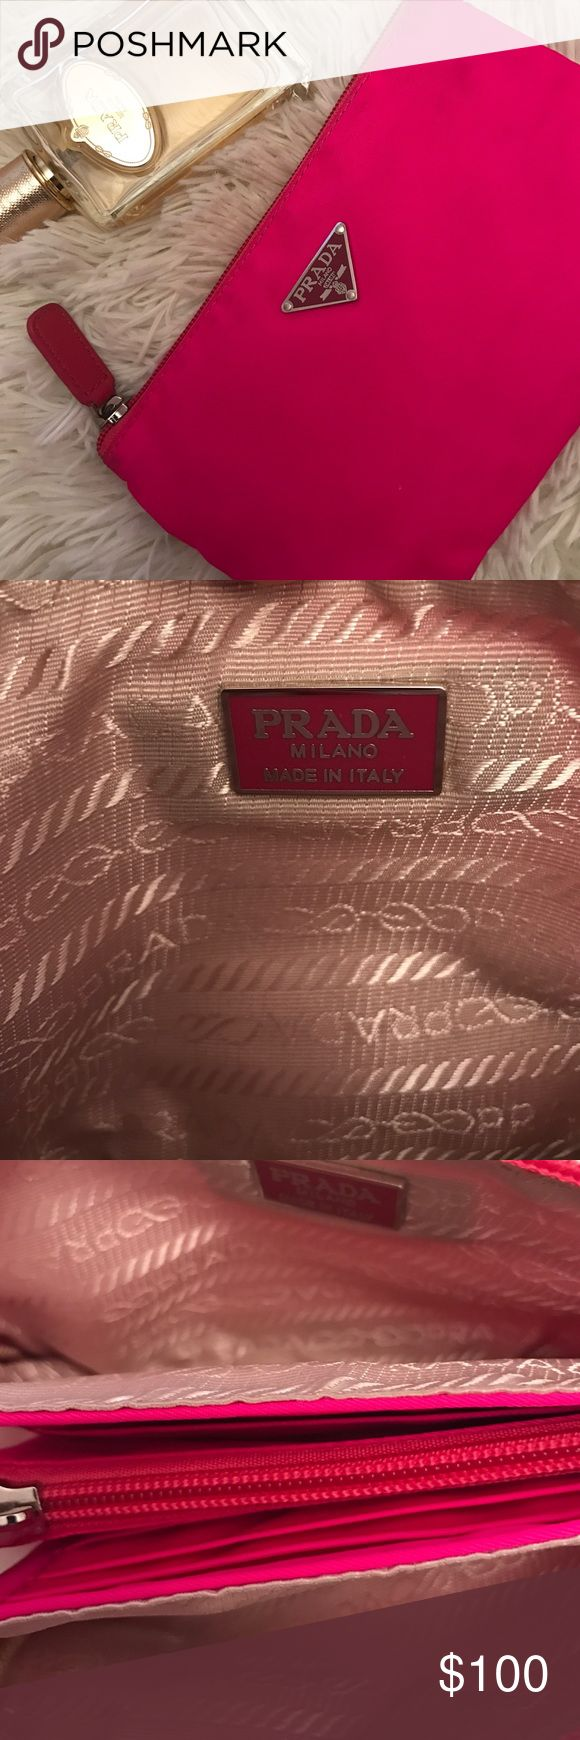 Prada Clutch Wallet Has two openings for money and card holders in the middle and coin purse as seen in photos! Some spots of dirt on the edges from use but overall good condition. The price is due to the slightly dirty edges to be fair. Prada Bags Wallets